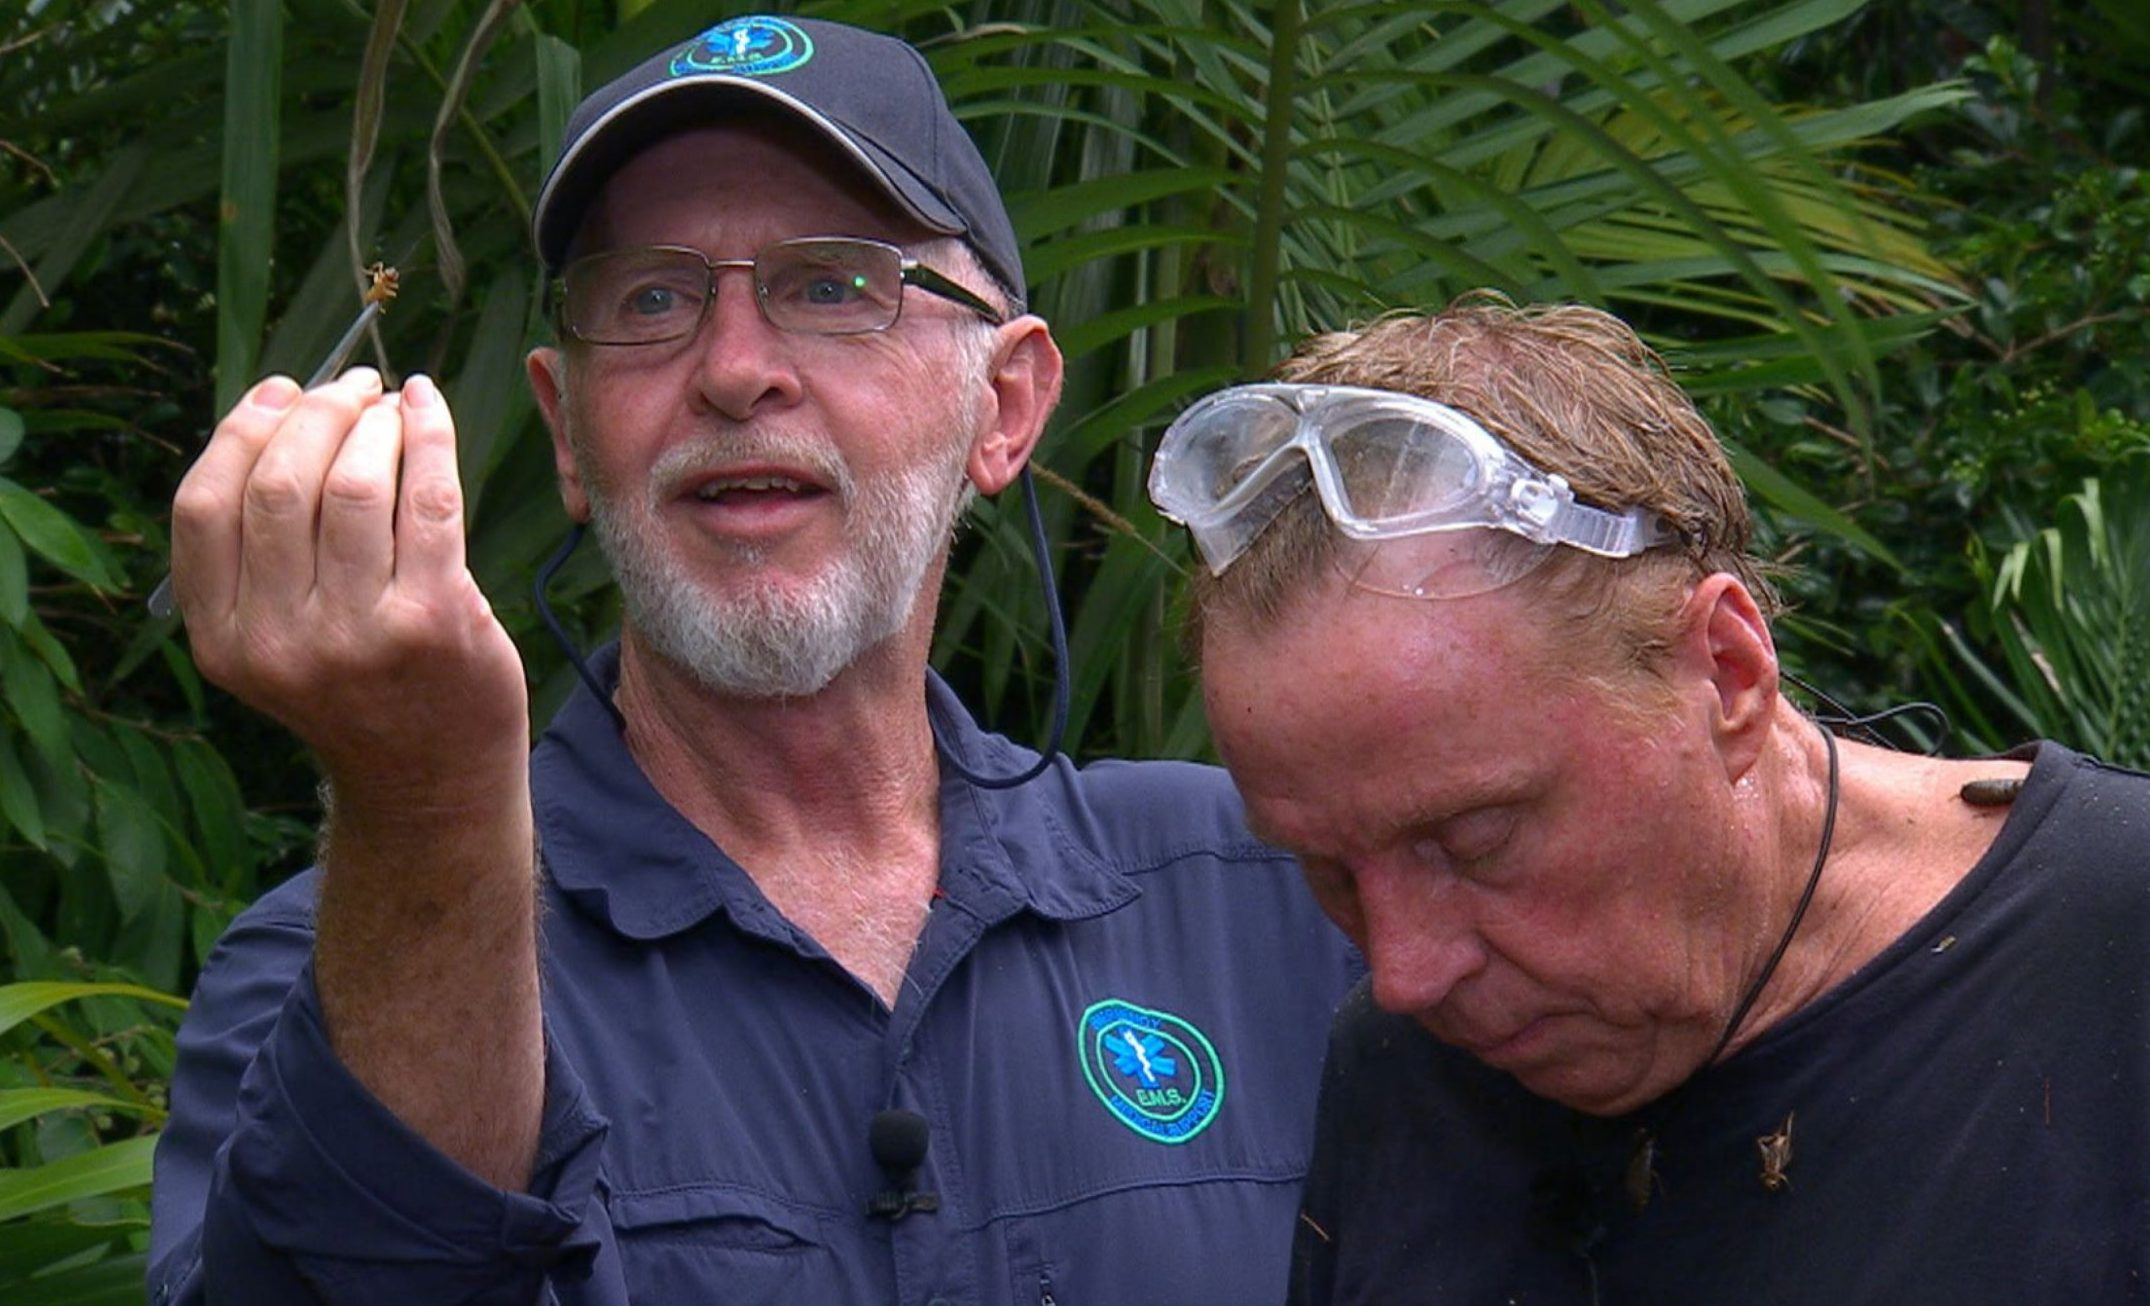 I'm a Celeb's Harry Redknapp gets cricket stuck in his ear in horrific final Bushtucker trial